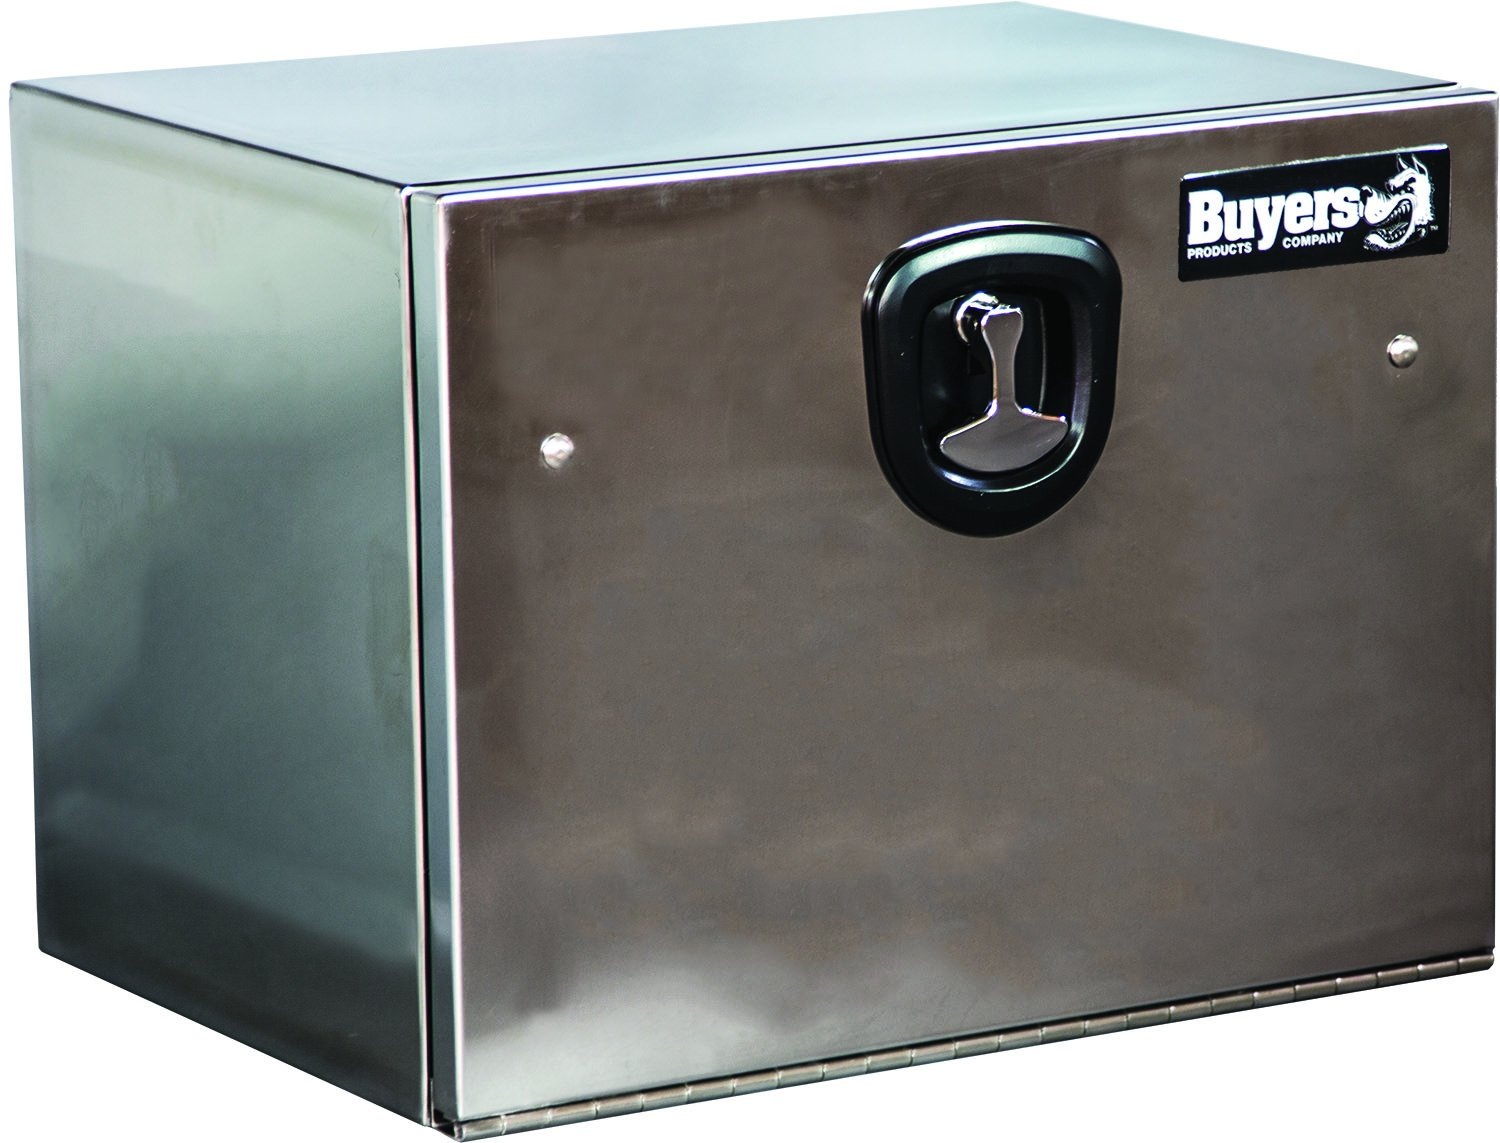 Buyers Products Polished Stainless Steel Underbody Truck Box w/ T-Handle Latch (18x18x30 Inch)